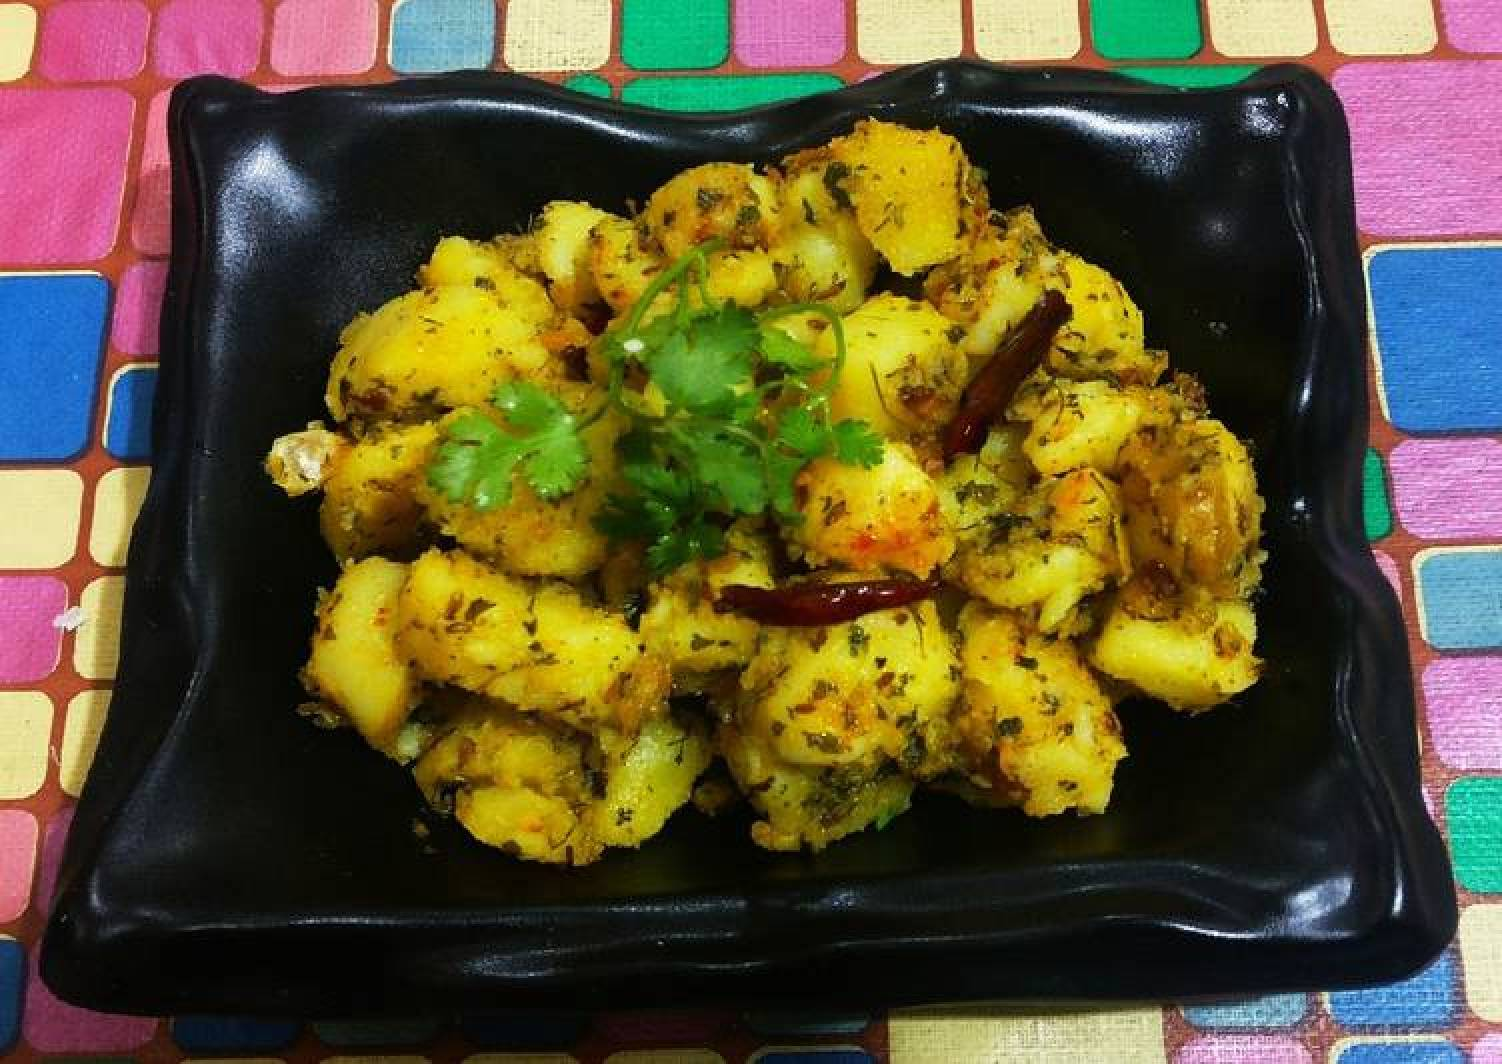 Kasuri methi with potato